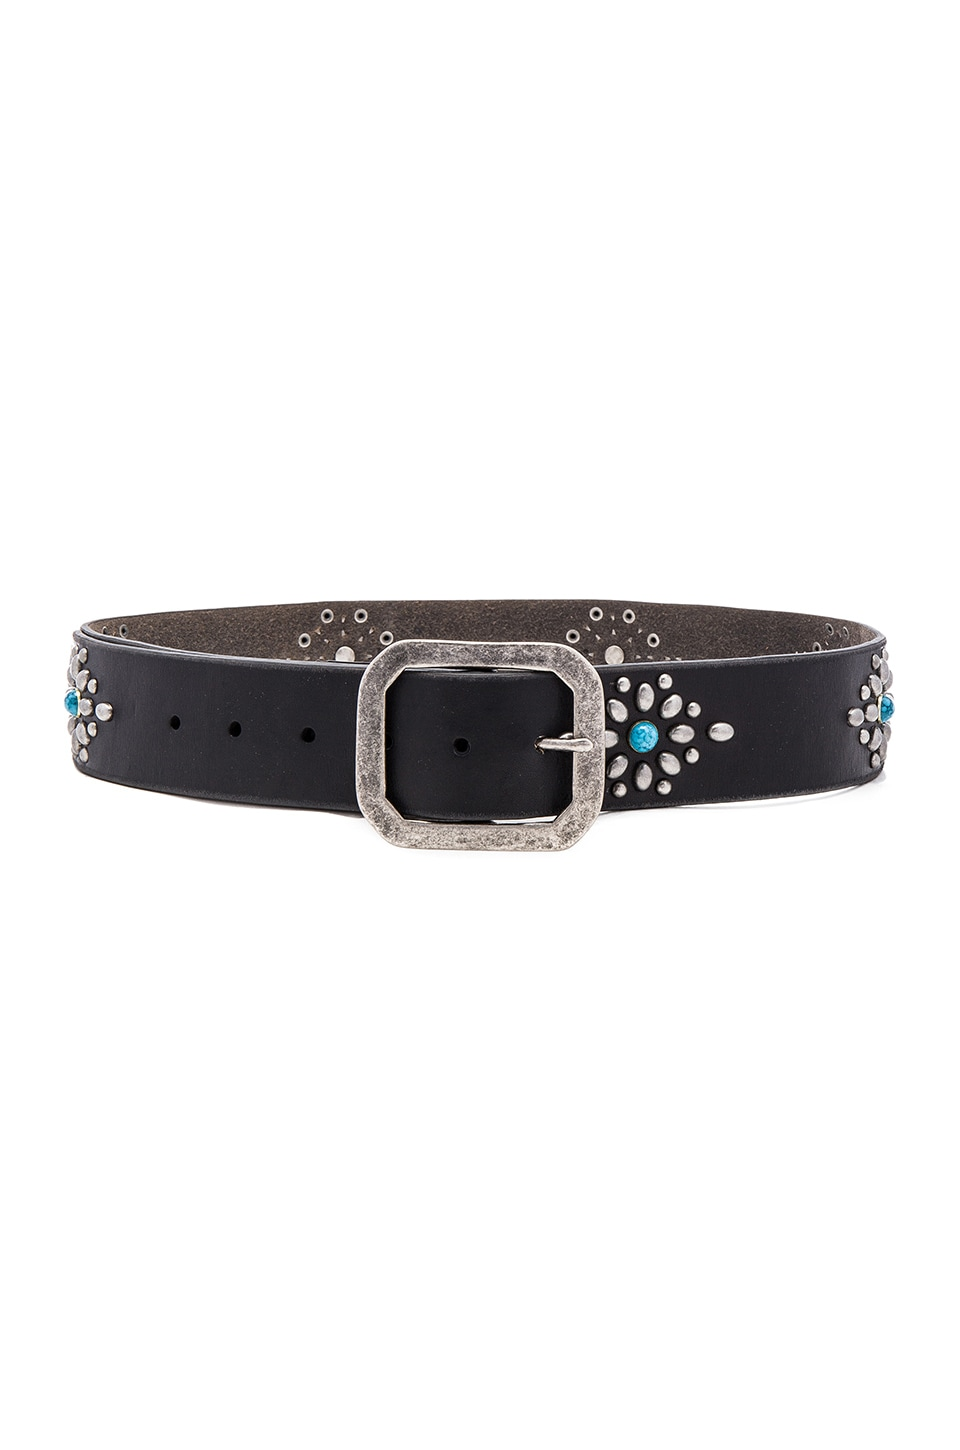 Linea Pelle Vintage Western Stud Hip Belt in Black & Antique Nickel